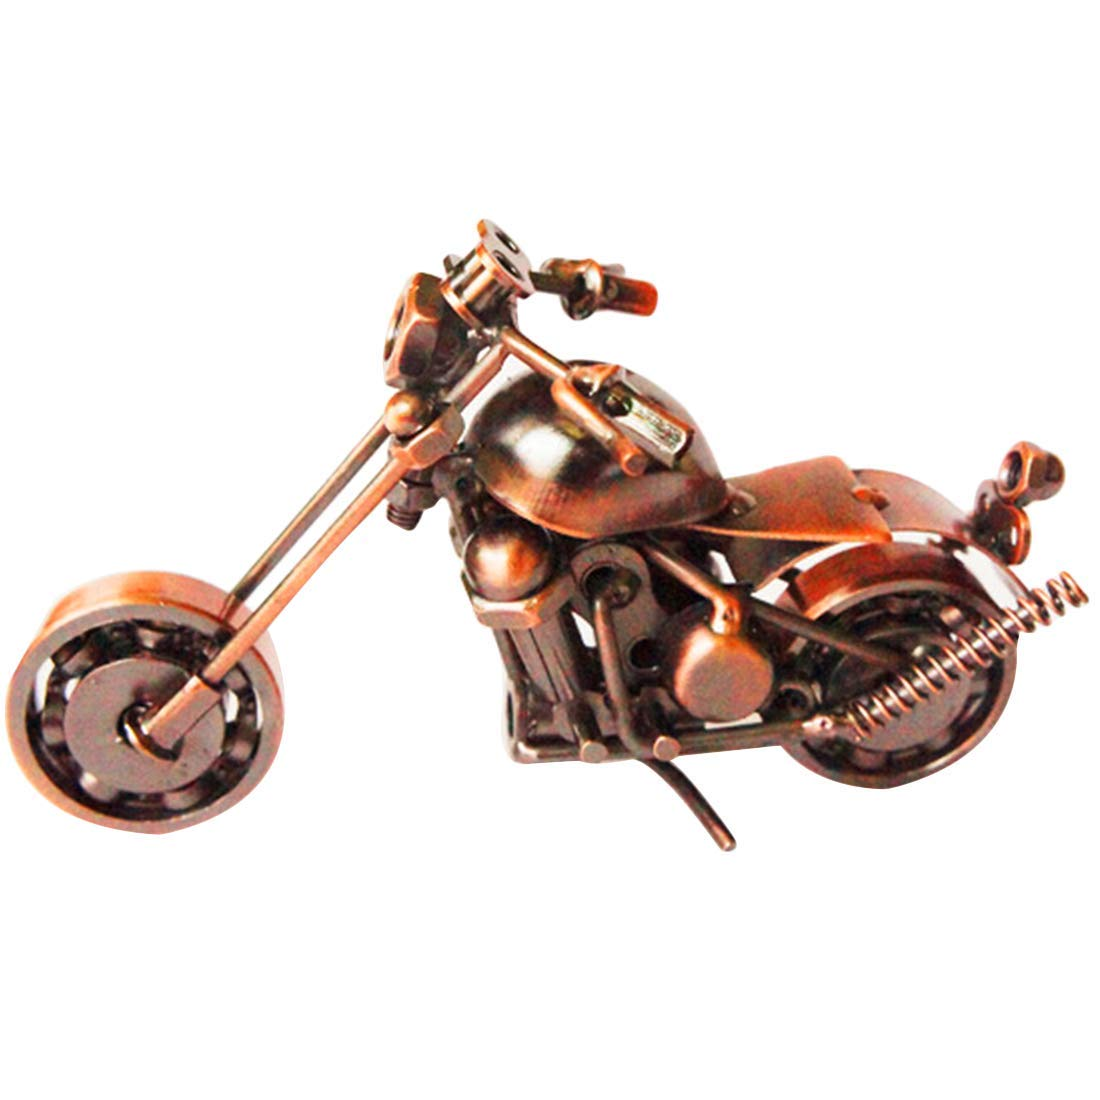 YoHouse Creative Home Decoration Iron Model Knick-knacks Metal Motorcycle Model Bronze